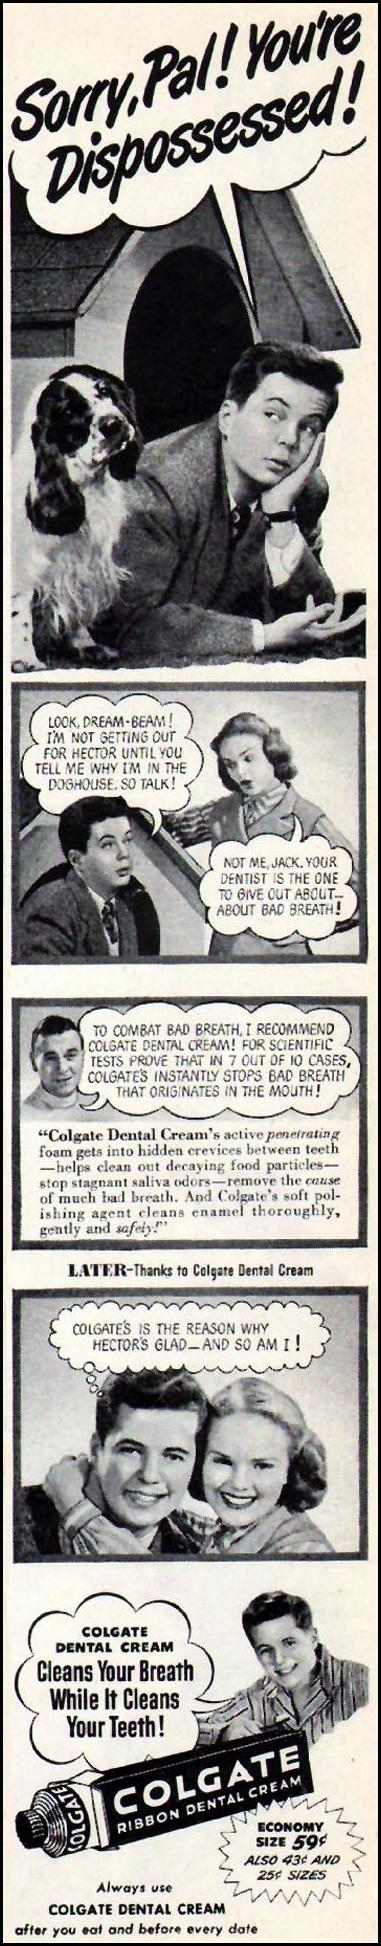 COLGATE DENTAL CREAM LADIES' HOME JOURNAL 07/01/1949 p. 135